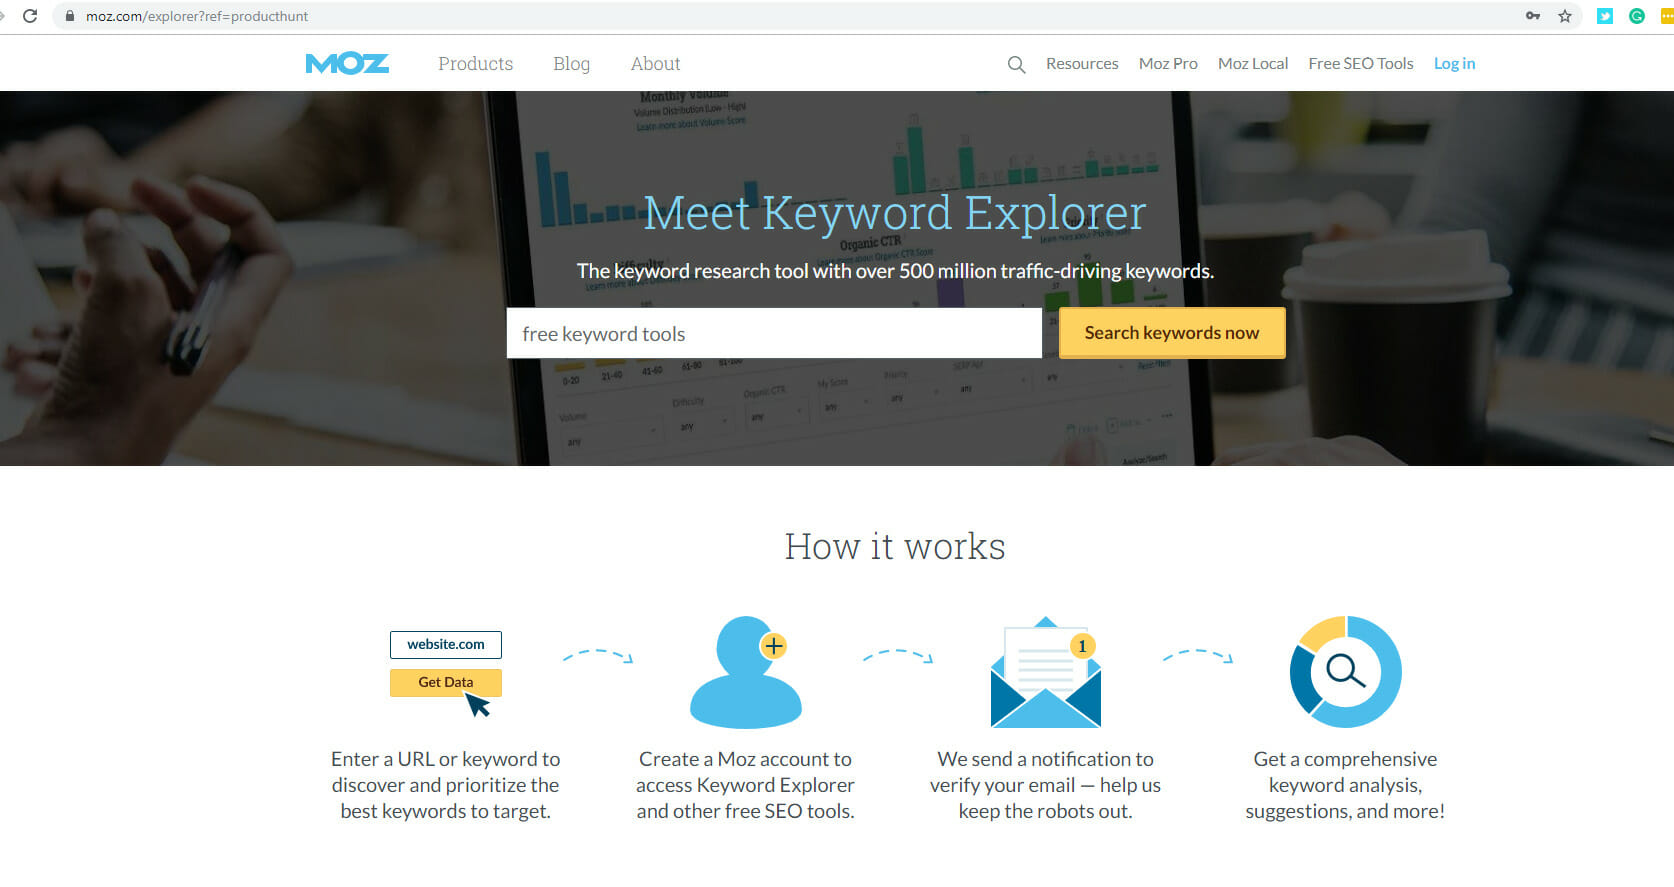 Free Tools for Keyword Search - Moz.com